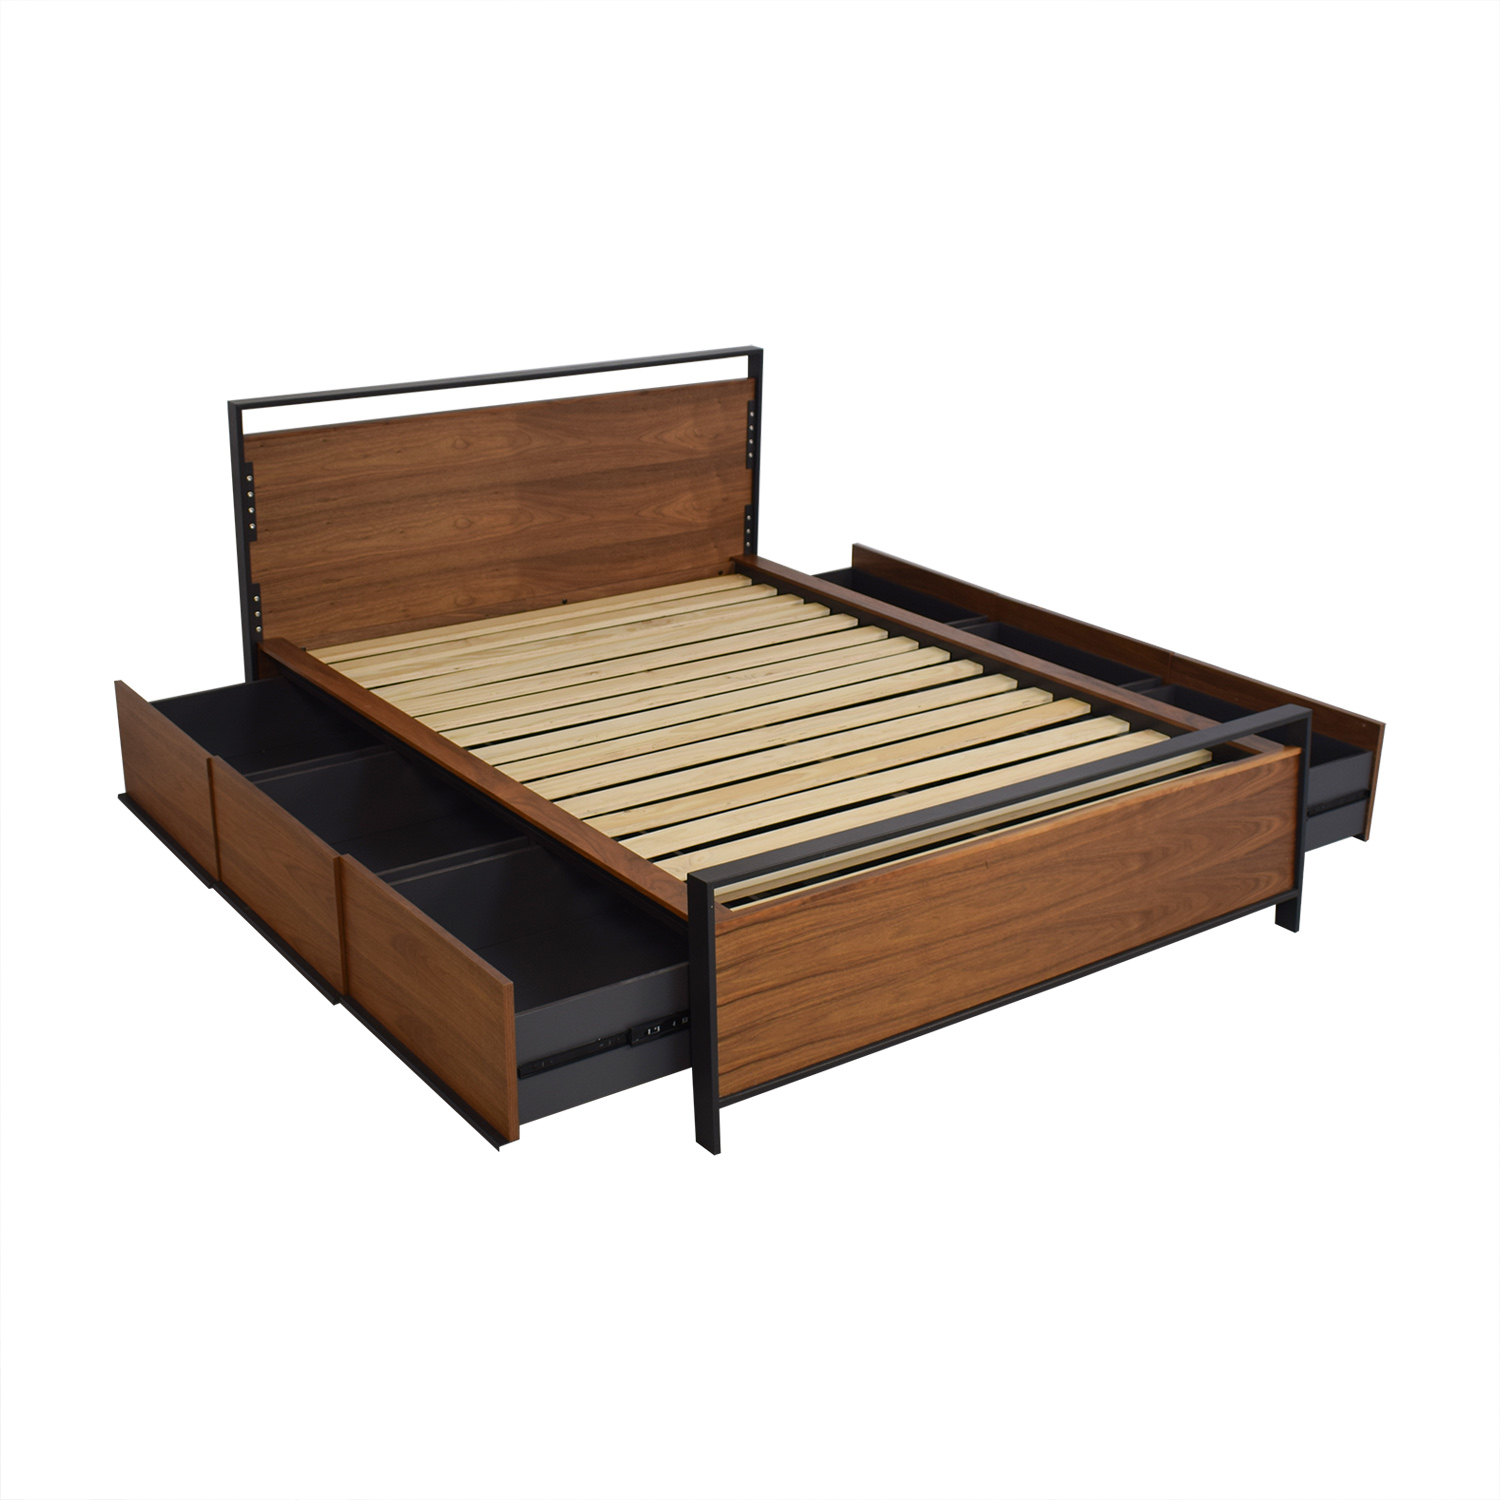 Crate & Barrel Crate & Barrel Storage Full Size Bed second hand